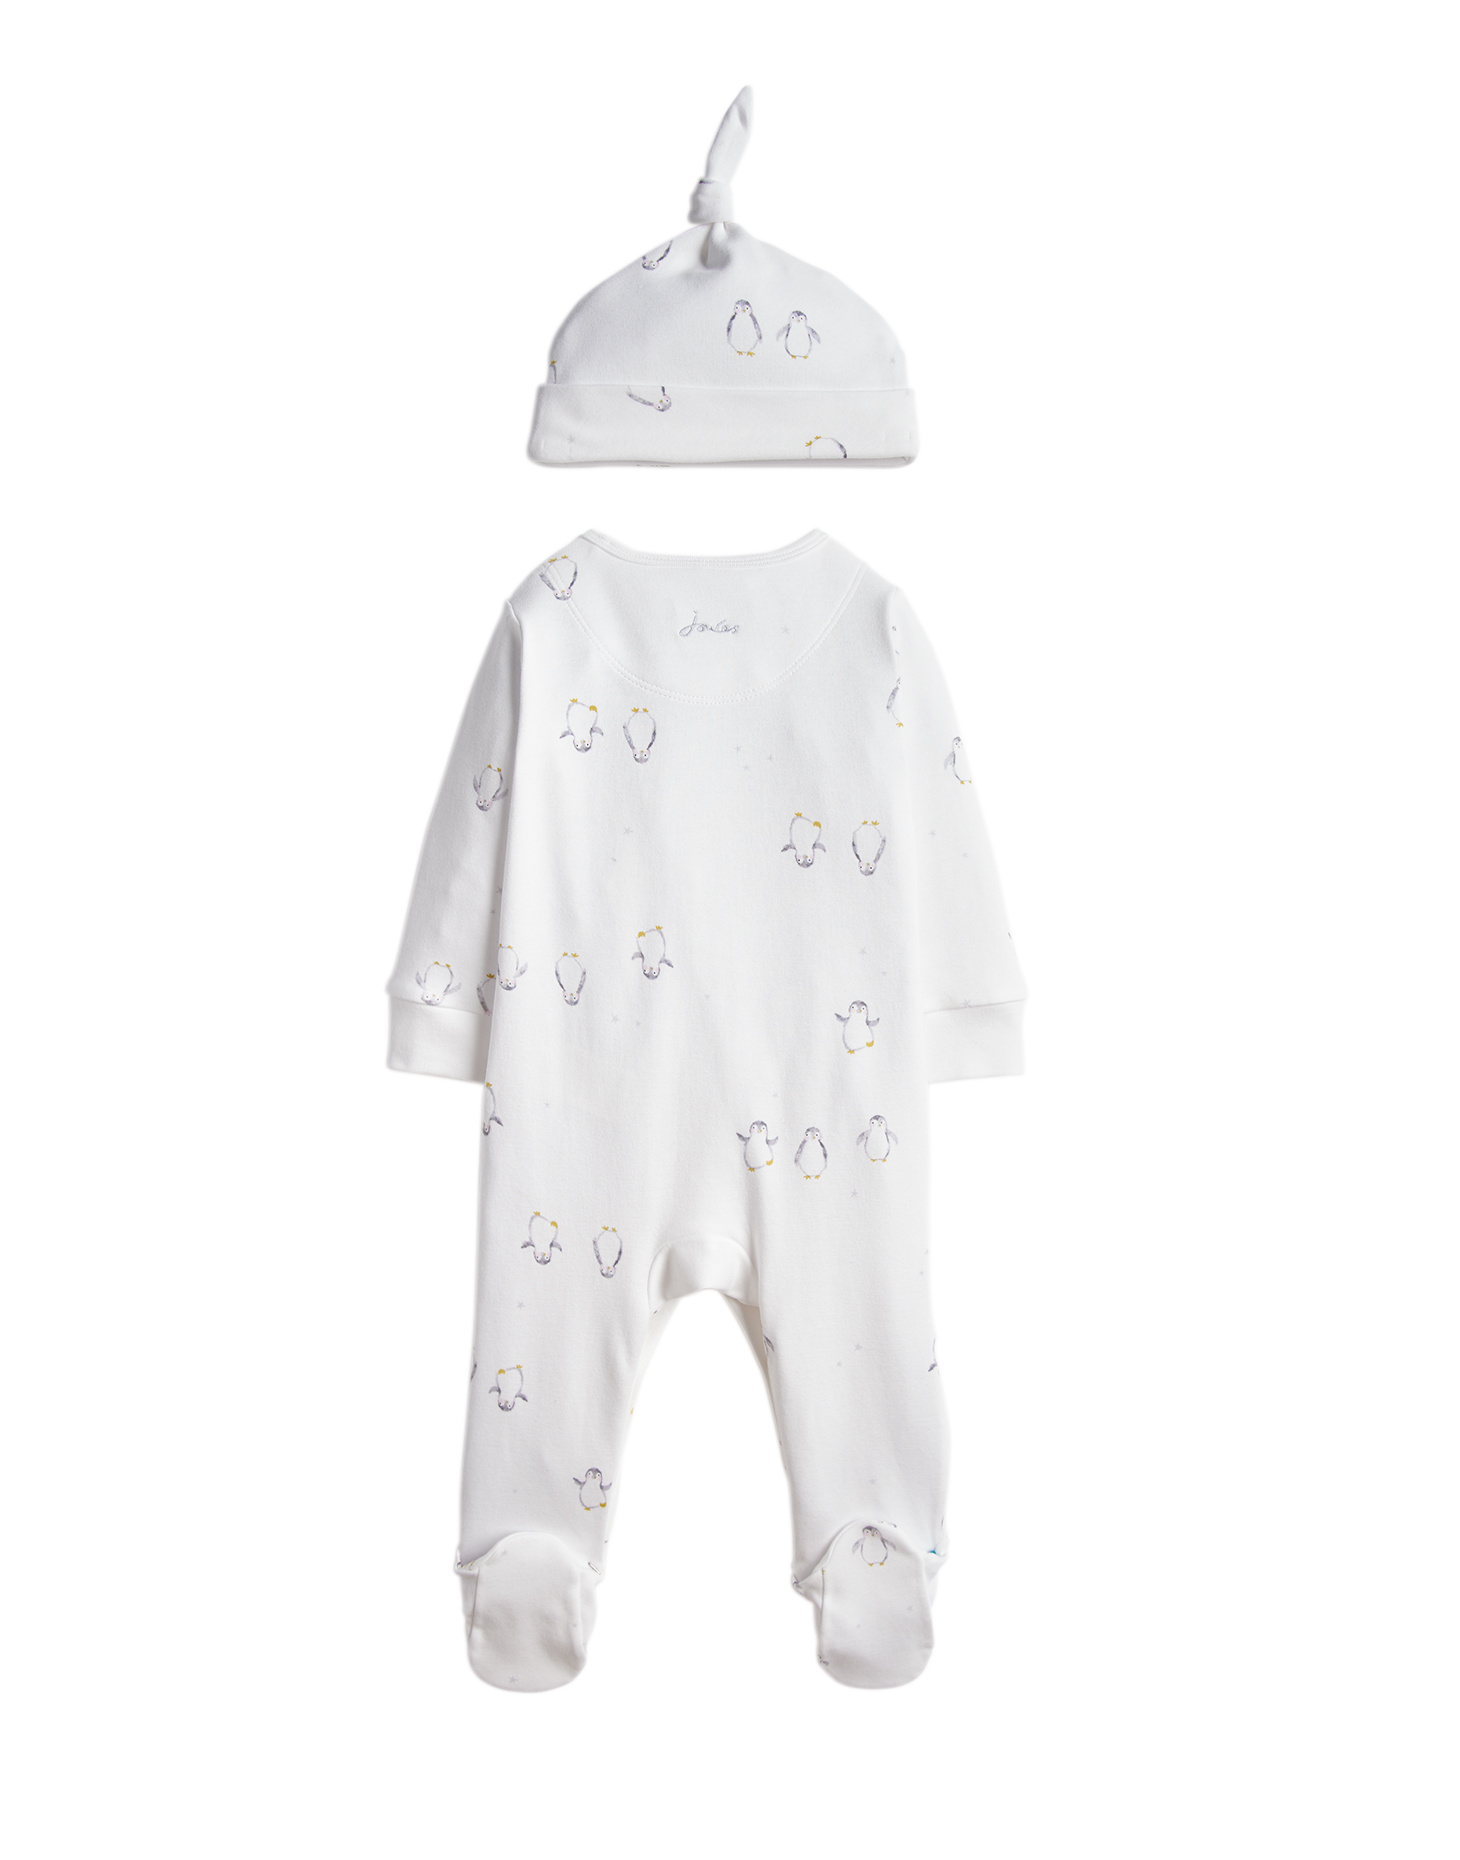 Joules Joules Yule Printed Babygrow and Hat Set